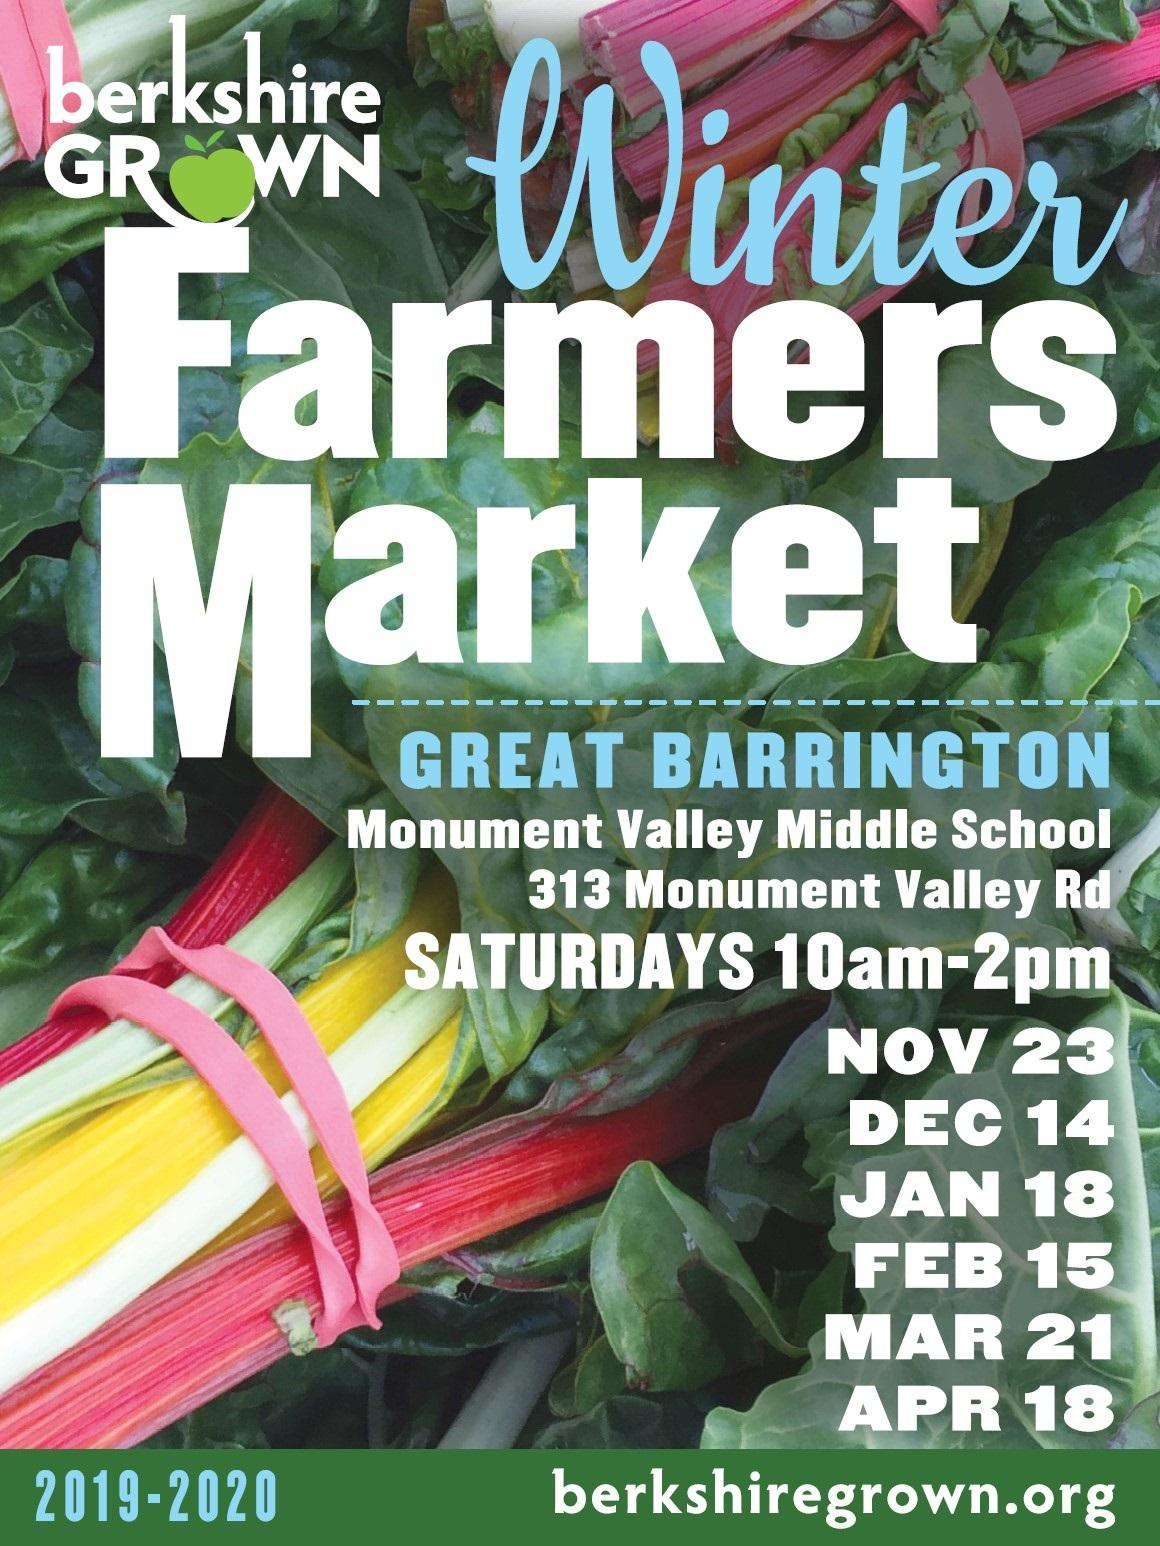 Great Barrington Winter Farmers Markets Monument Valley Middle School, 313 Monument Valley Rd. 10AM-2PM Saturday, November 23 Saturday, December 14 Saturday, January 18 Saturday, February 15 Saturday, March 21 Saturday, April 18